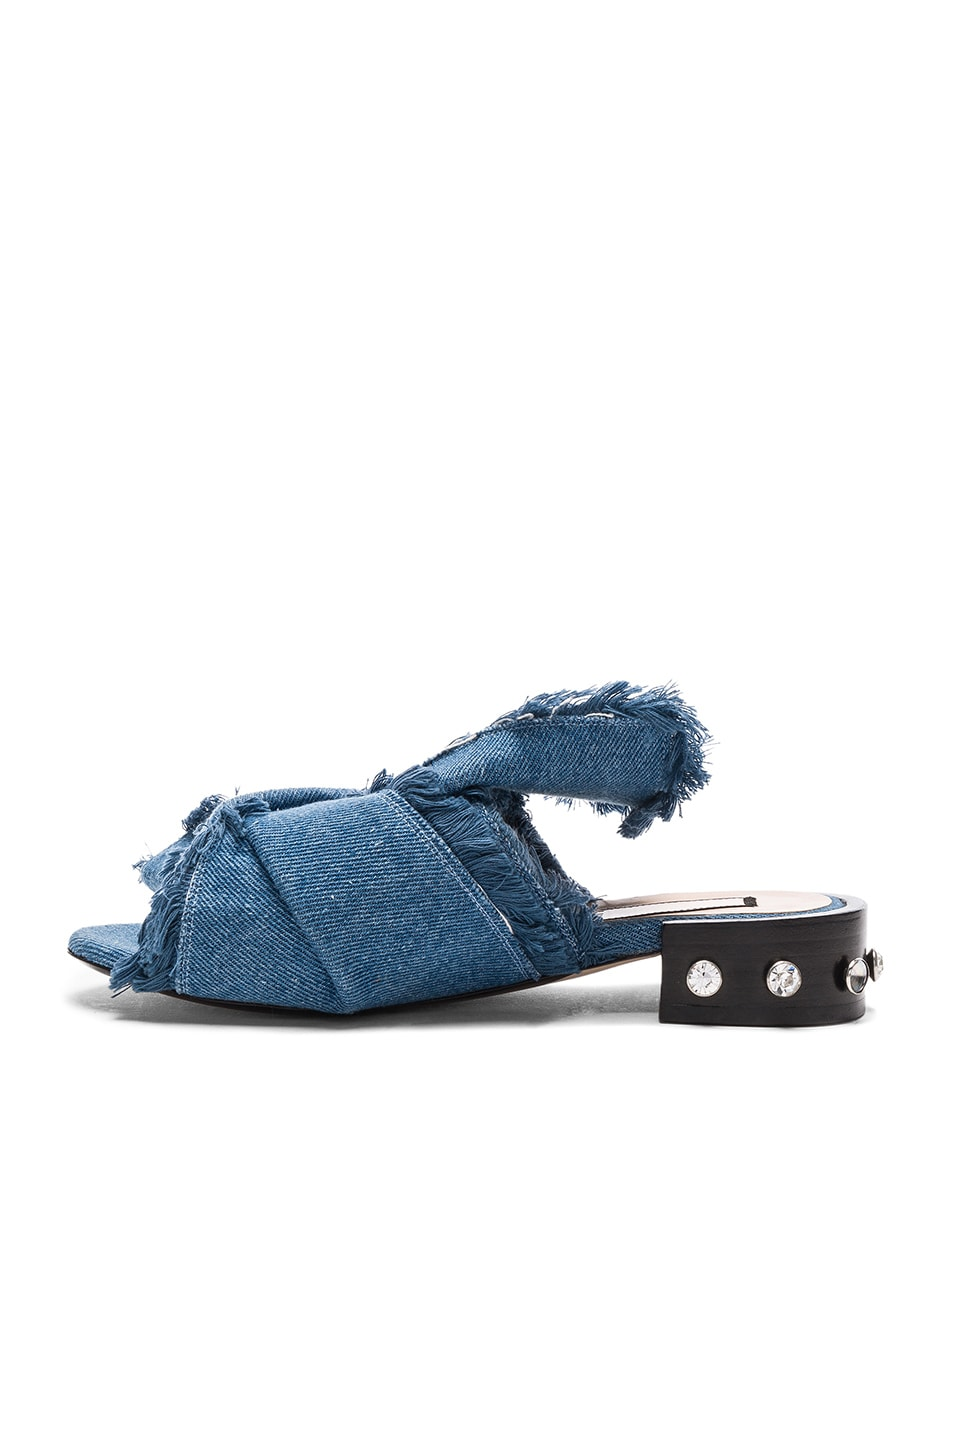 Image 5 of No. 21 Bow Denim Mules in Denim Blue